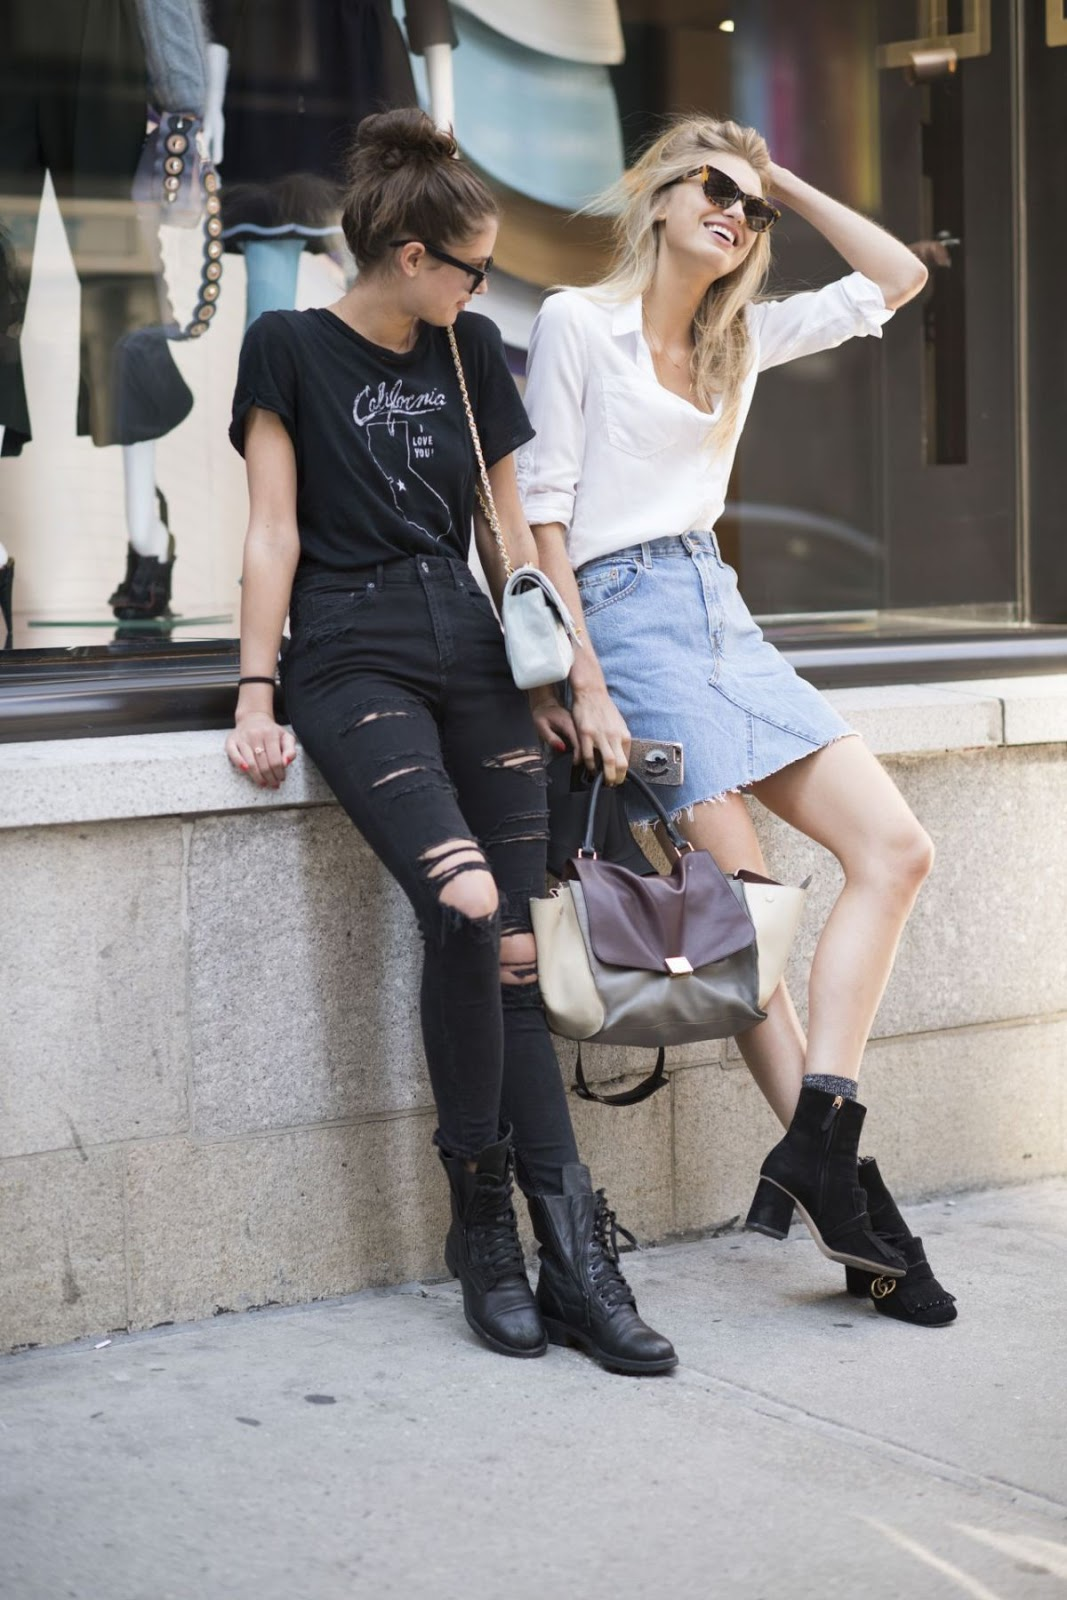 HQ Photos of Taylor Hill and Romee Strijd out in NYC